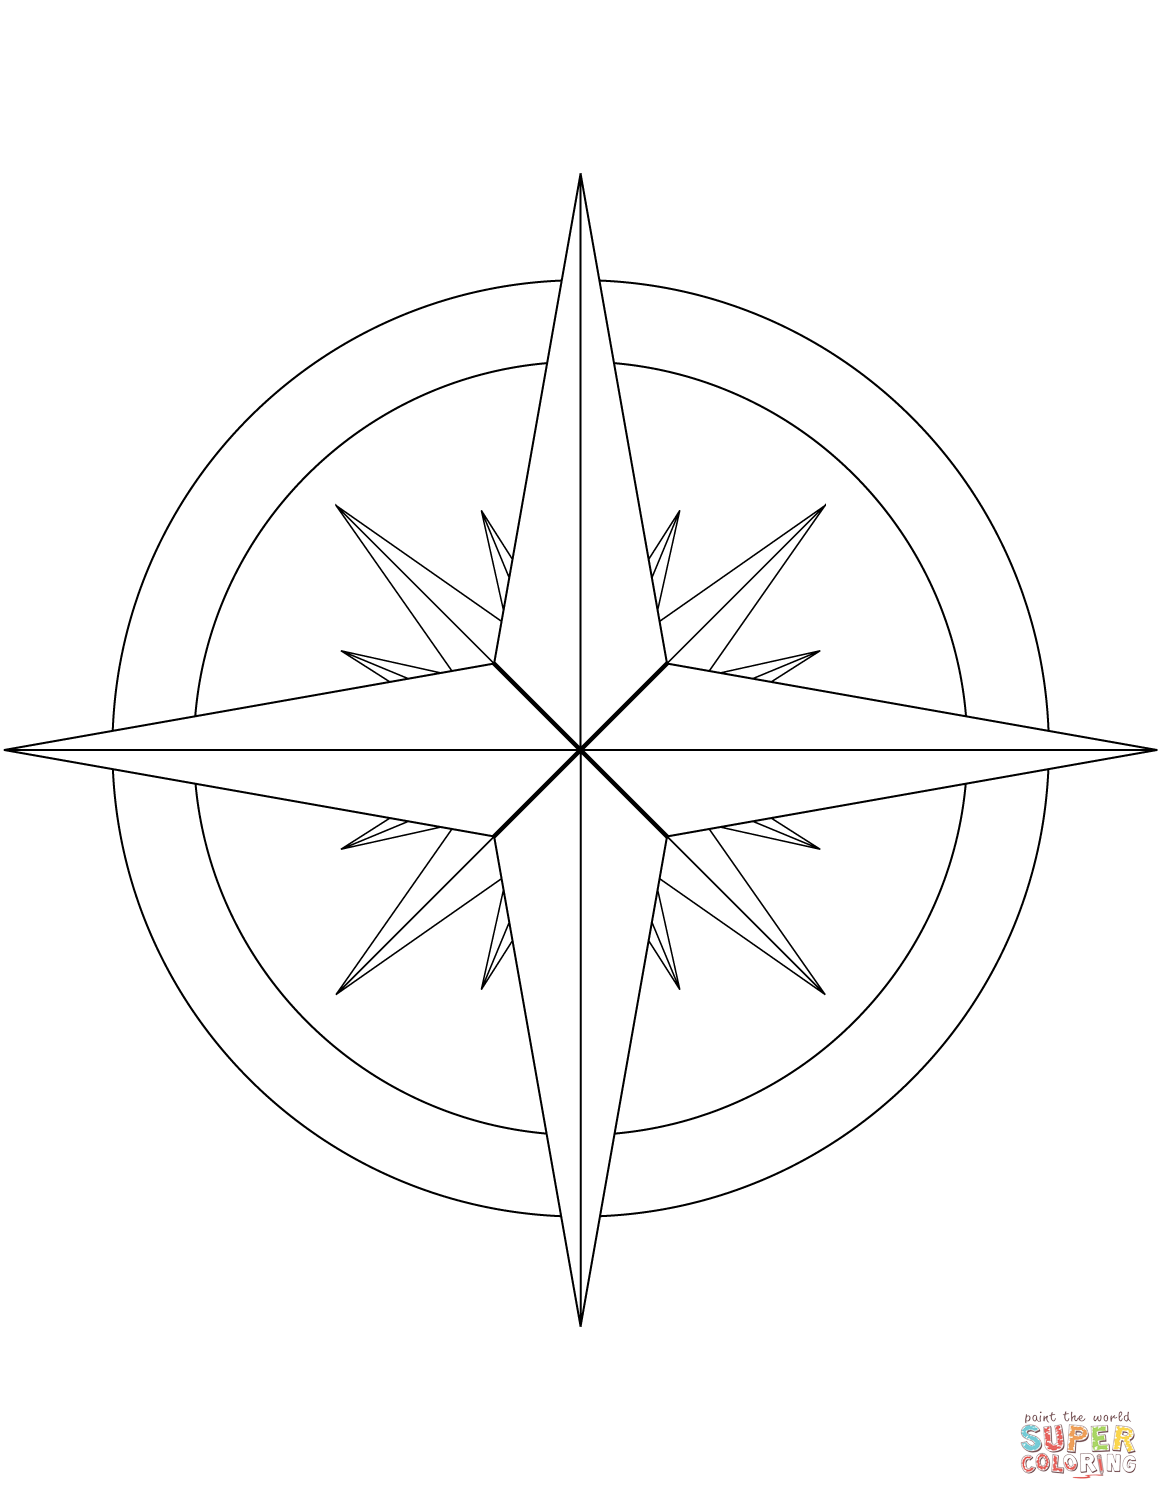 16 Point Compass Rose Coloring Page